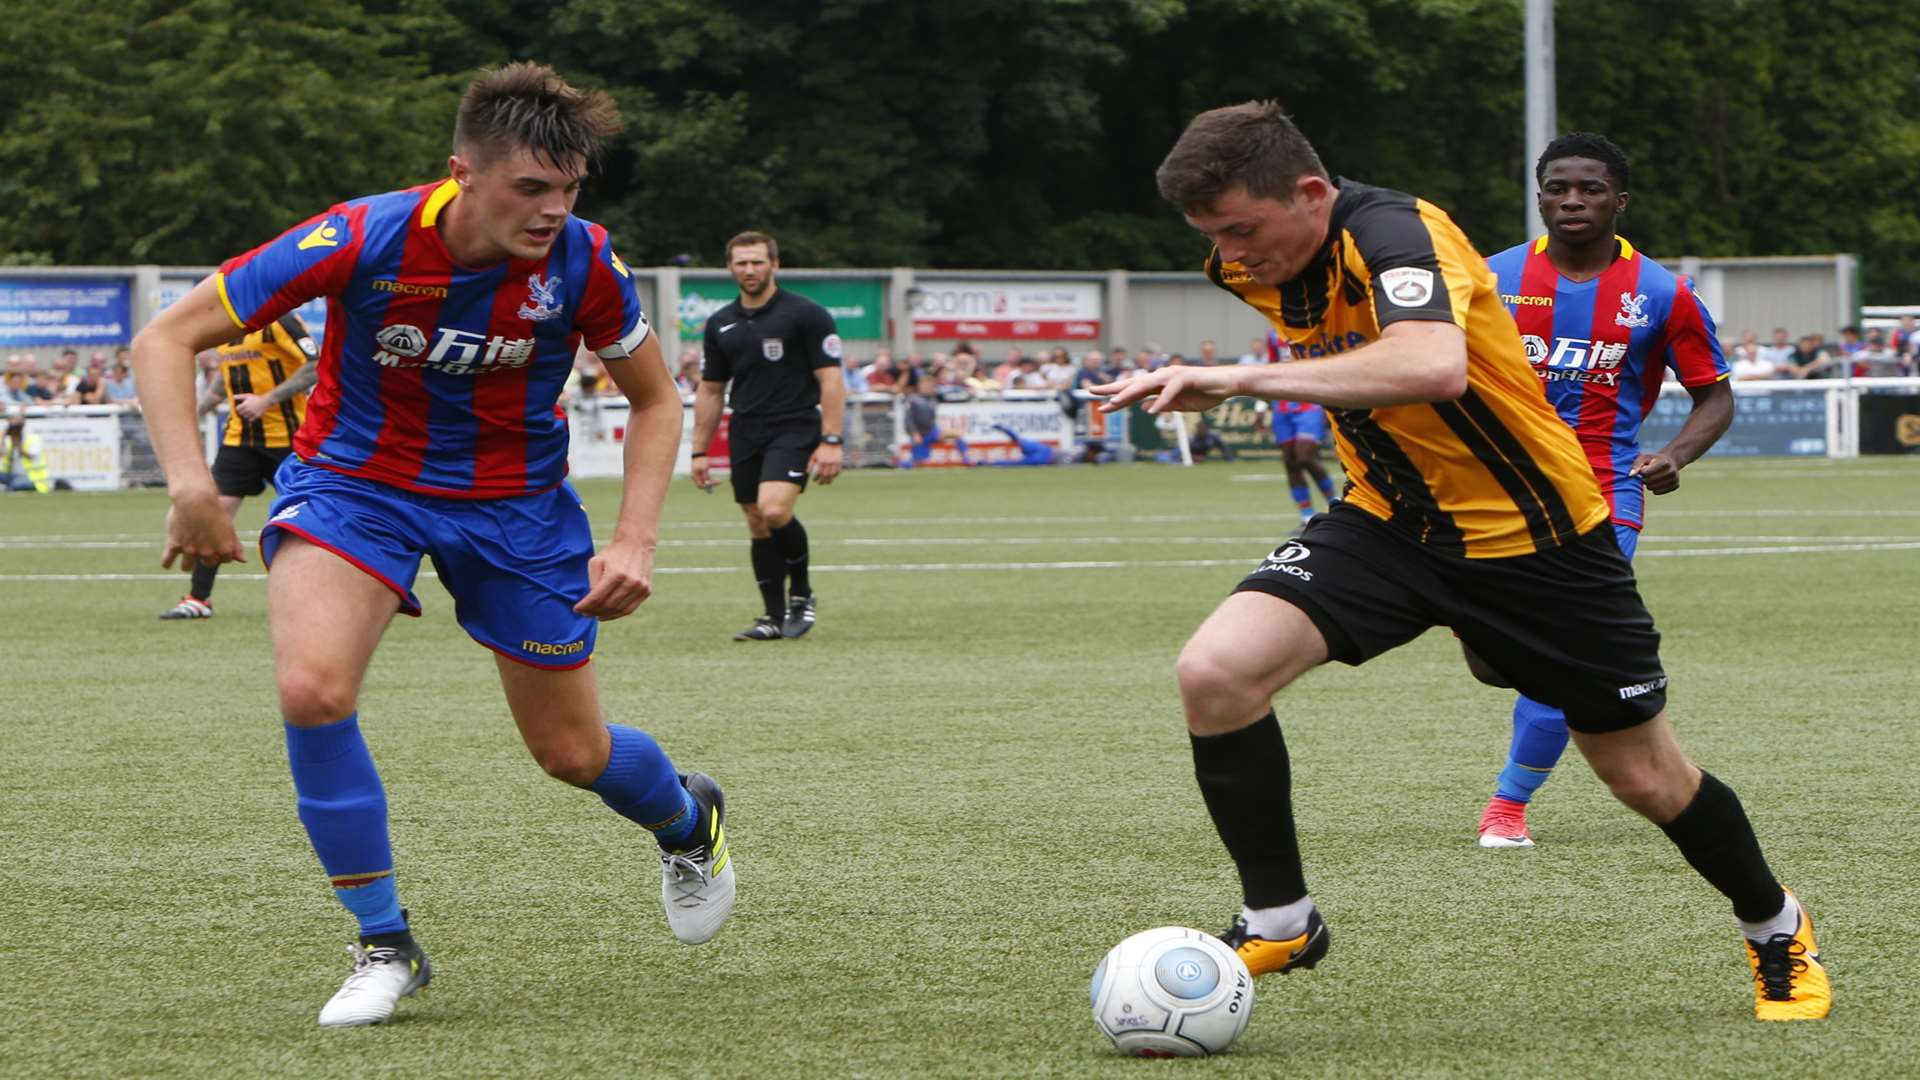 Tom Wraight in pre-season action against Crystal Palace Picture: Andy Jones